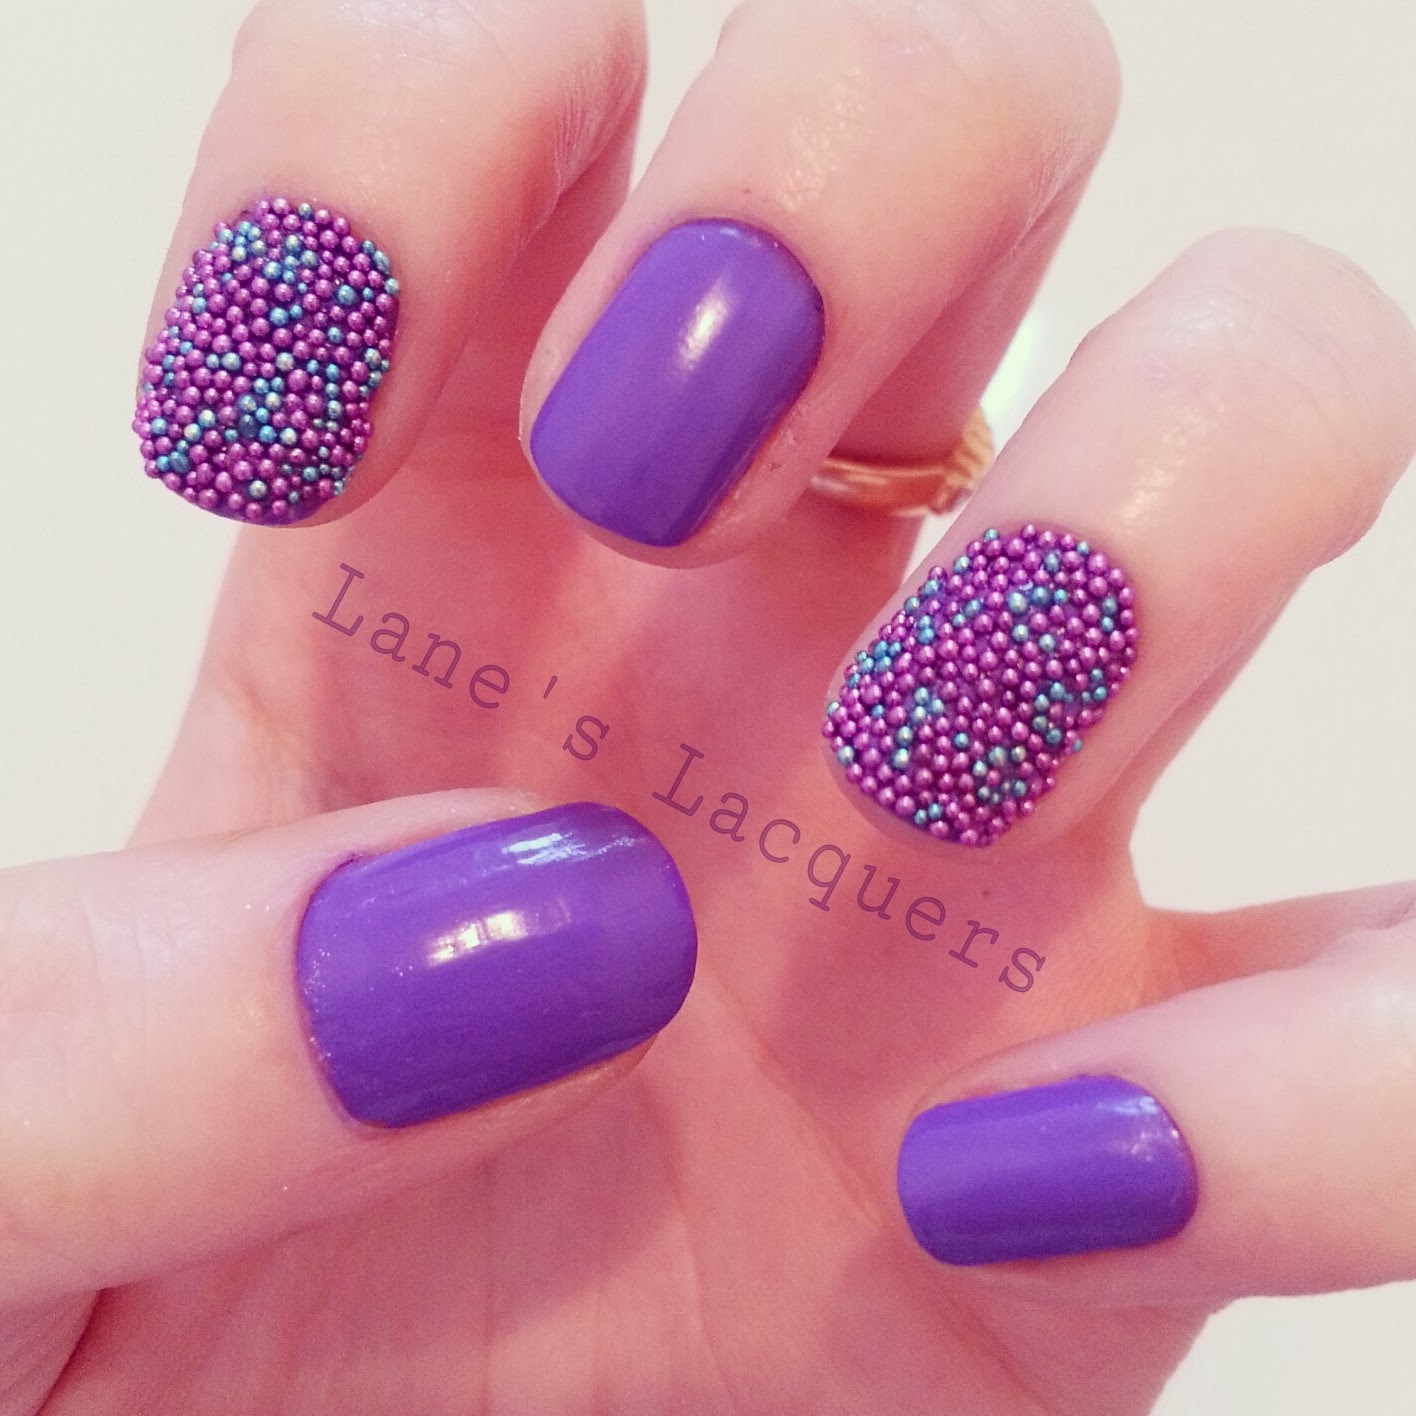 GOT-polish-challenge-purple-caviar-beads-manicure